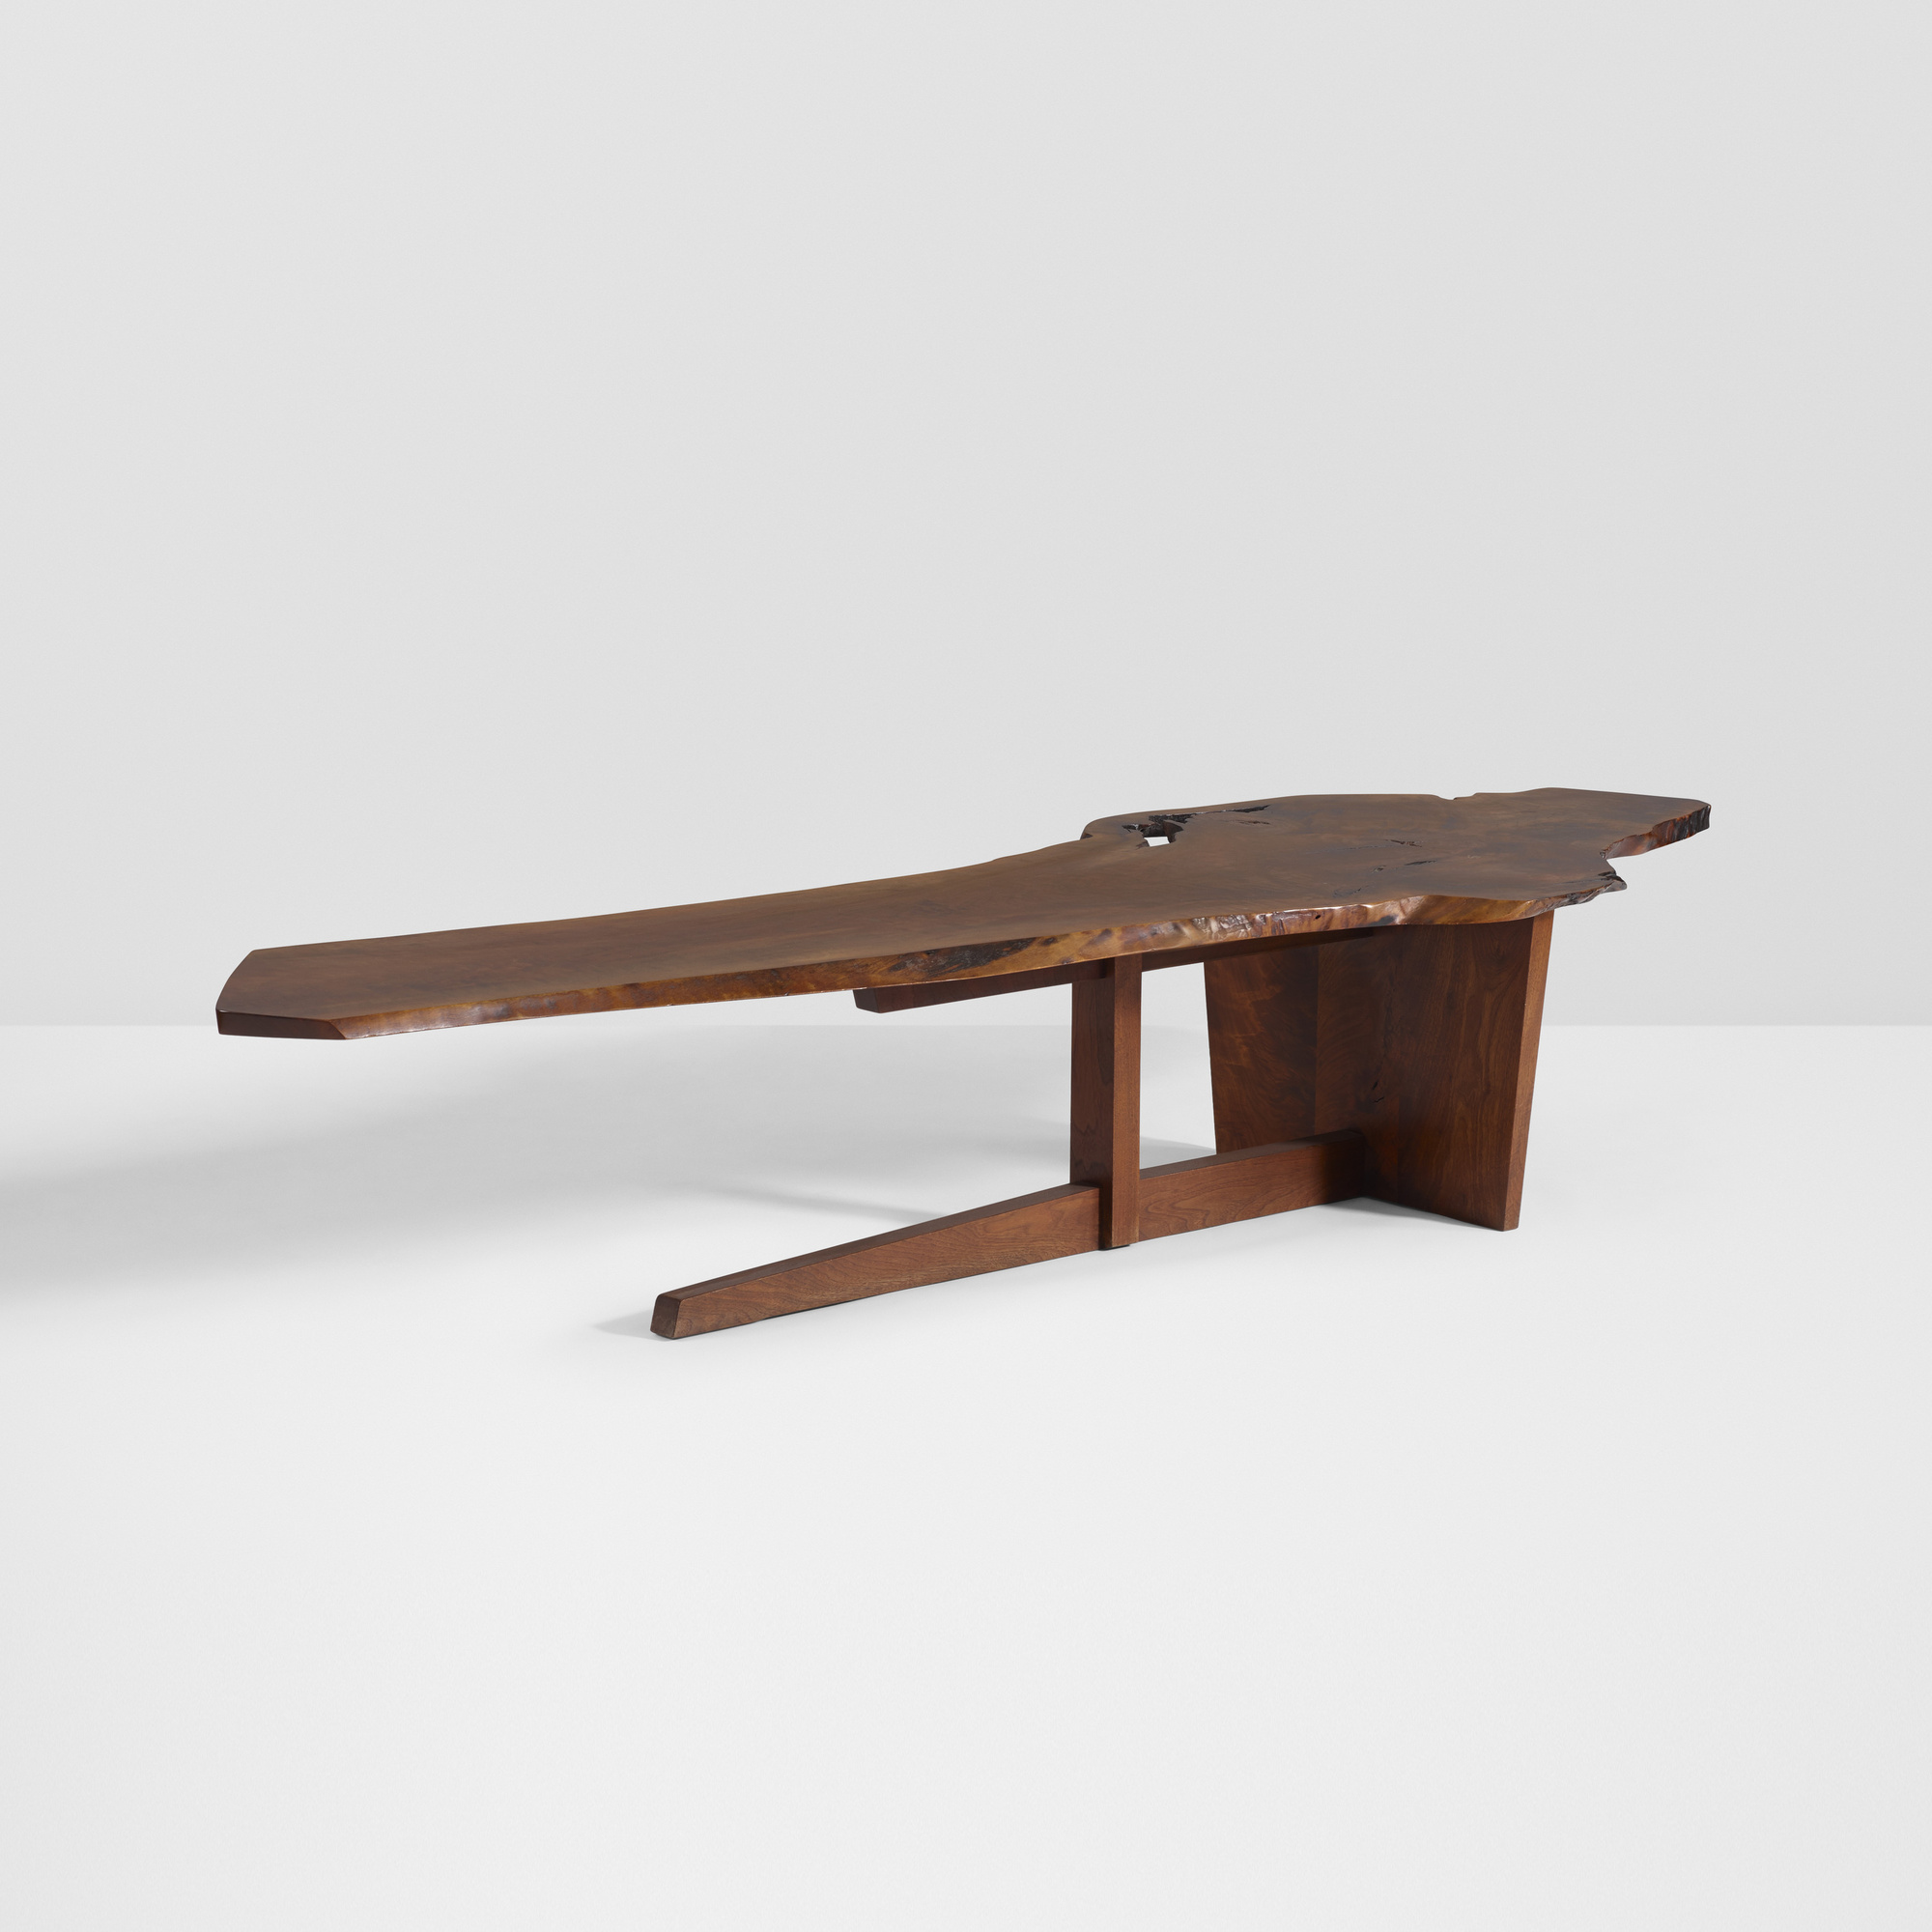 26: George Nakashima / Important Minguren II coffee table (3 of 4)